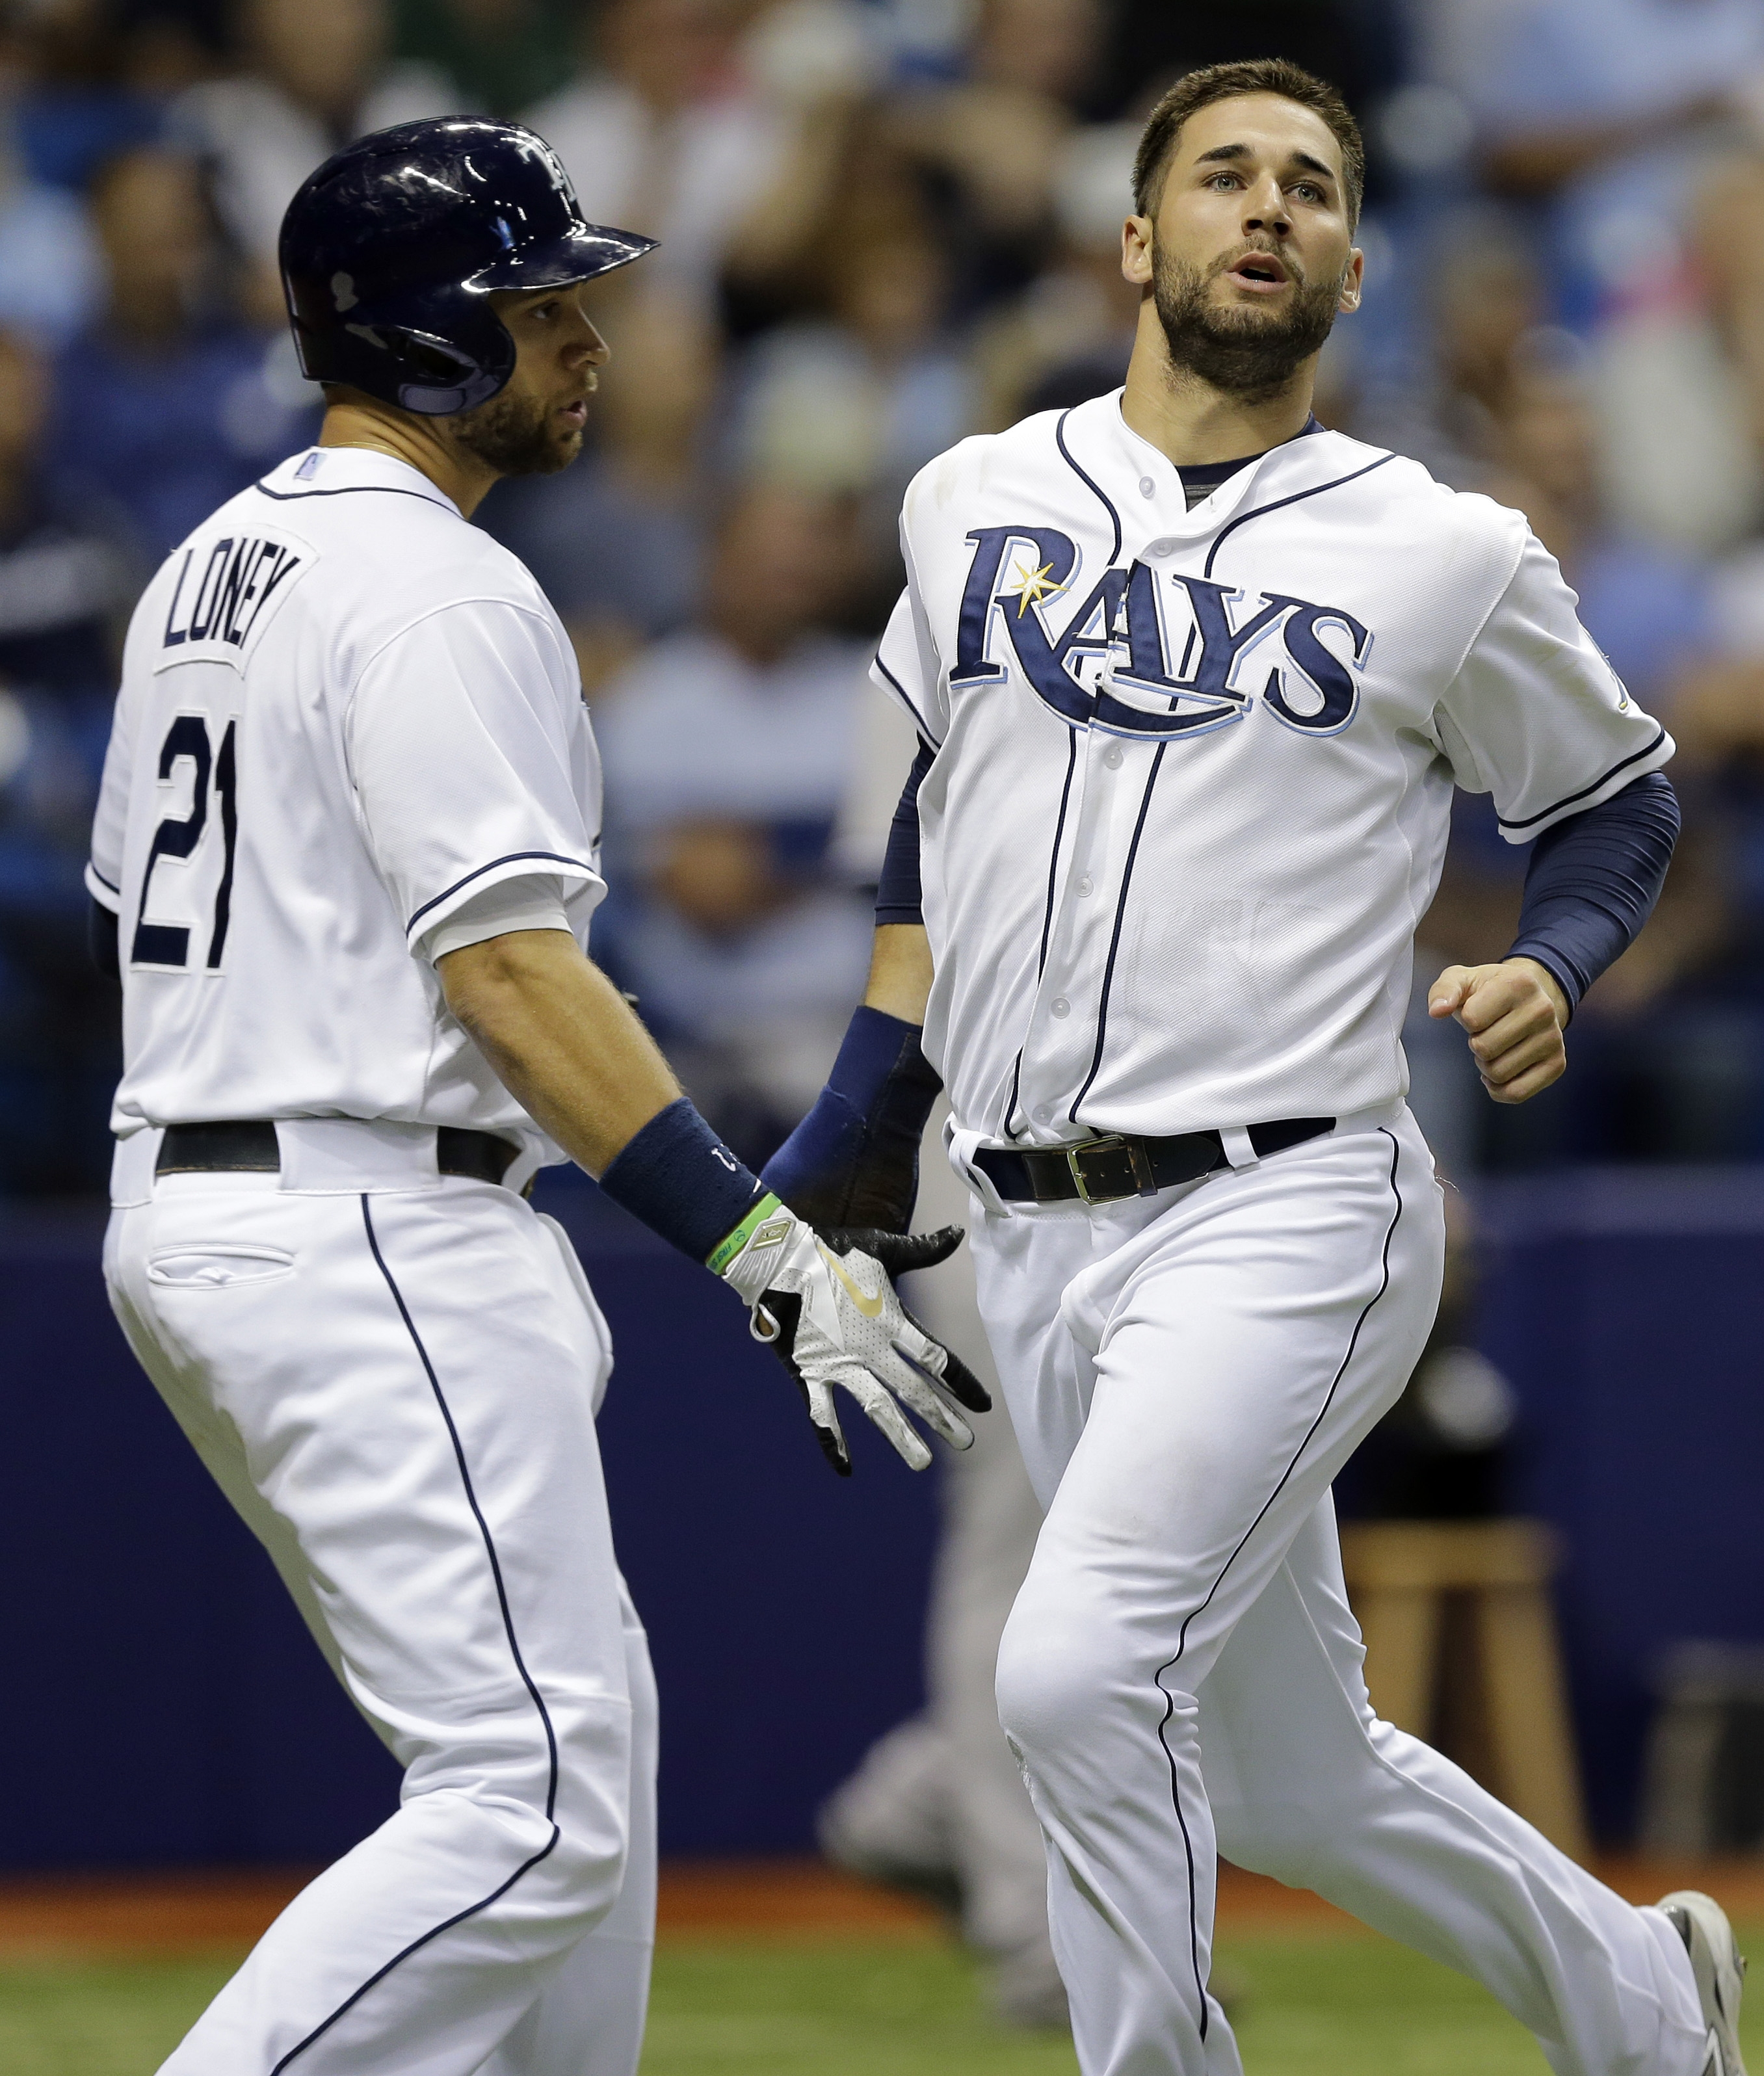 Tampa Bay Rays' Kevin Kiermaier, right, celebrates with James Loney after scoring on a single by J.P. Arencibia off New York Yankees relief pitcher Bryan Mitchell during the eighth inning of a baseball game Tuesday, Sept. 15, 2015, in St. Petersburg, Fla.